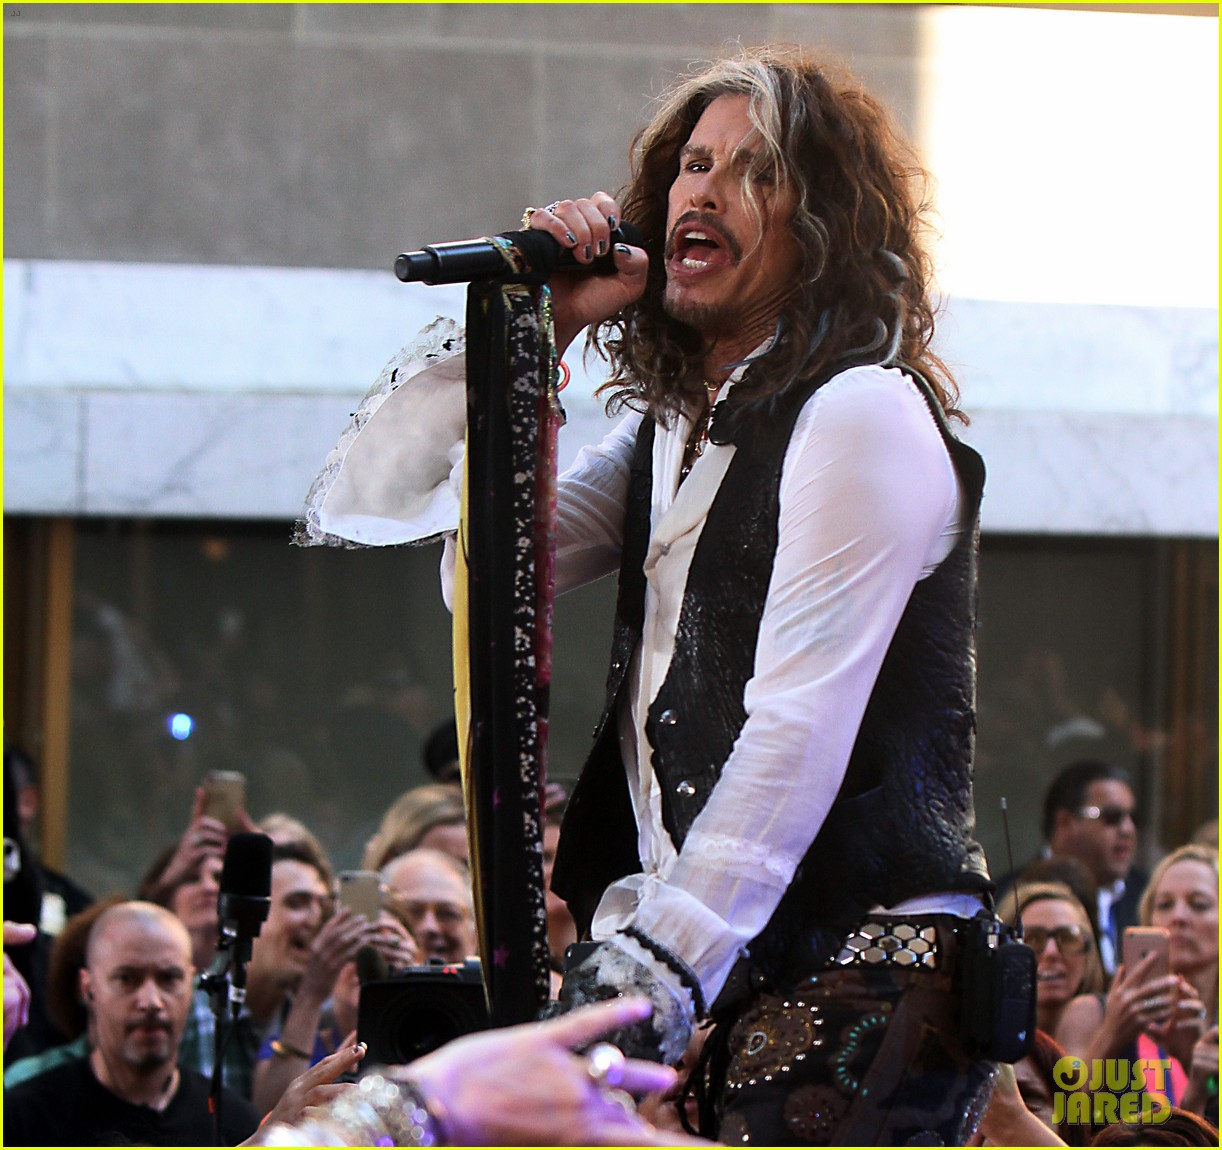 Communication on this topic: Kate england, aerosmith-tour-crocked-after-steven-tyler-surgery/